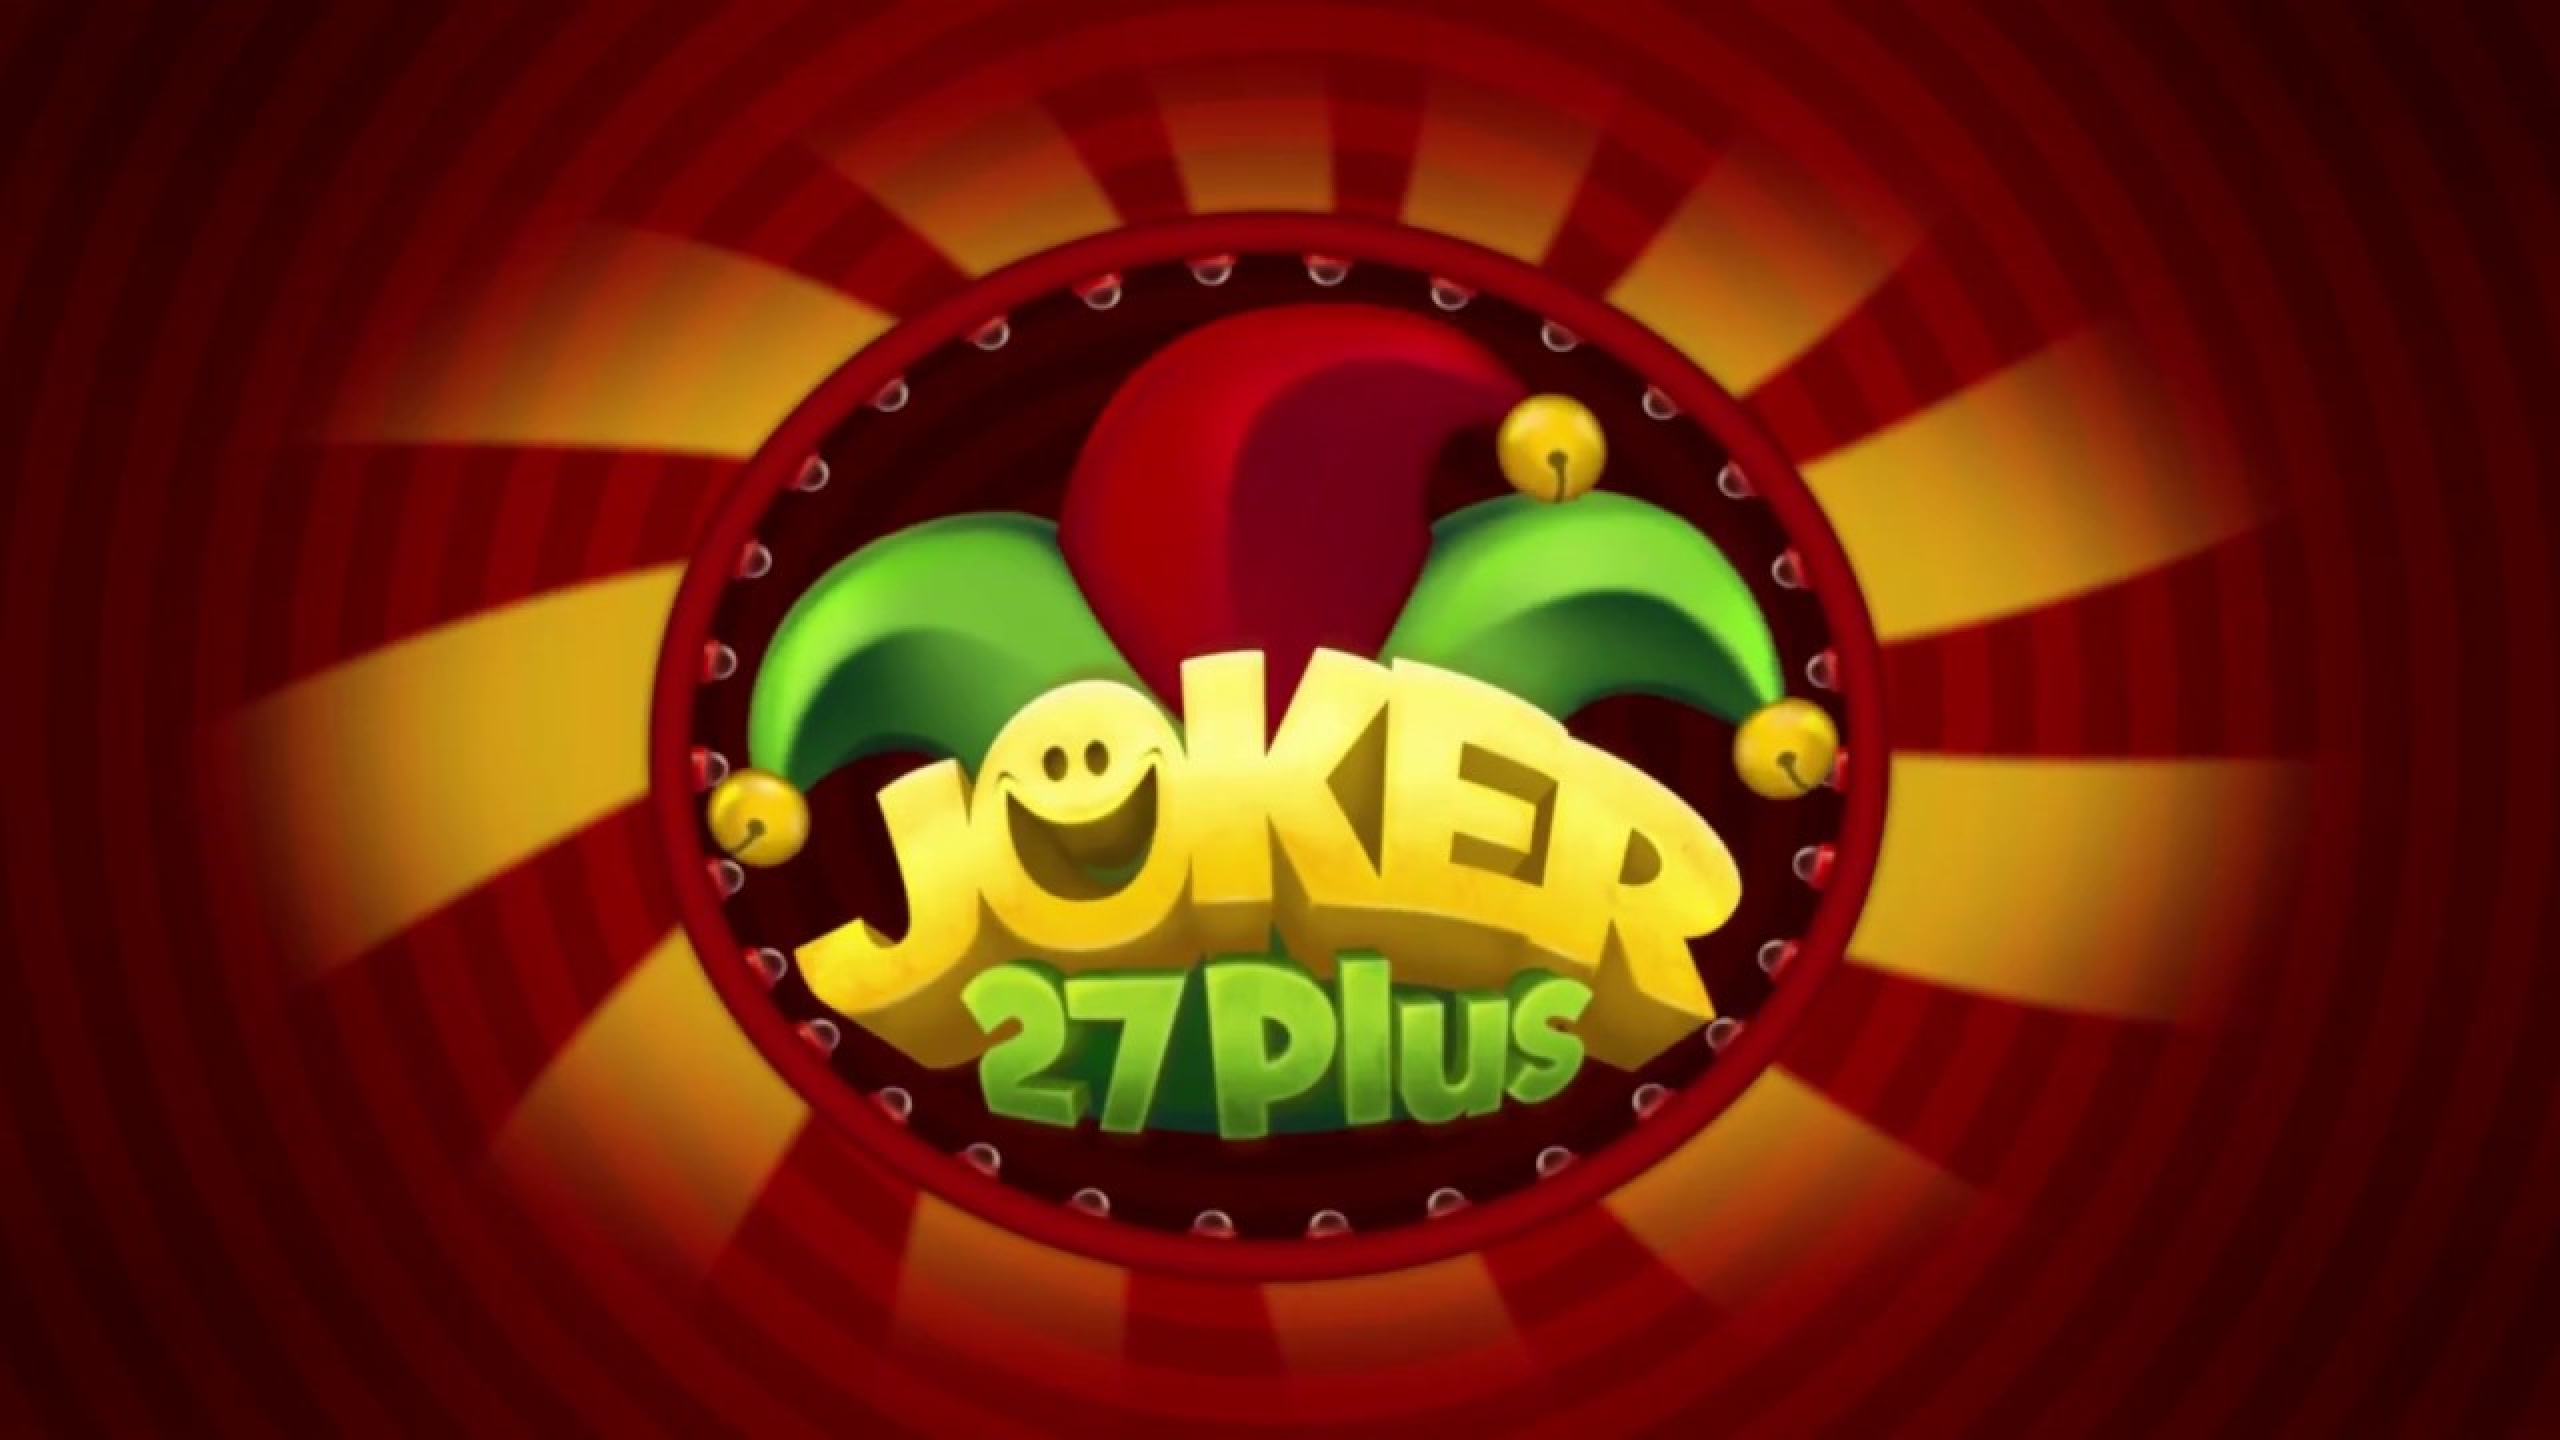 The Joker 27 Online Slot Demo Game by KAJOT